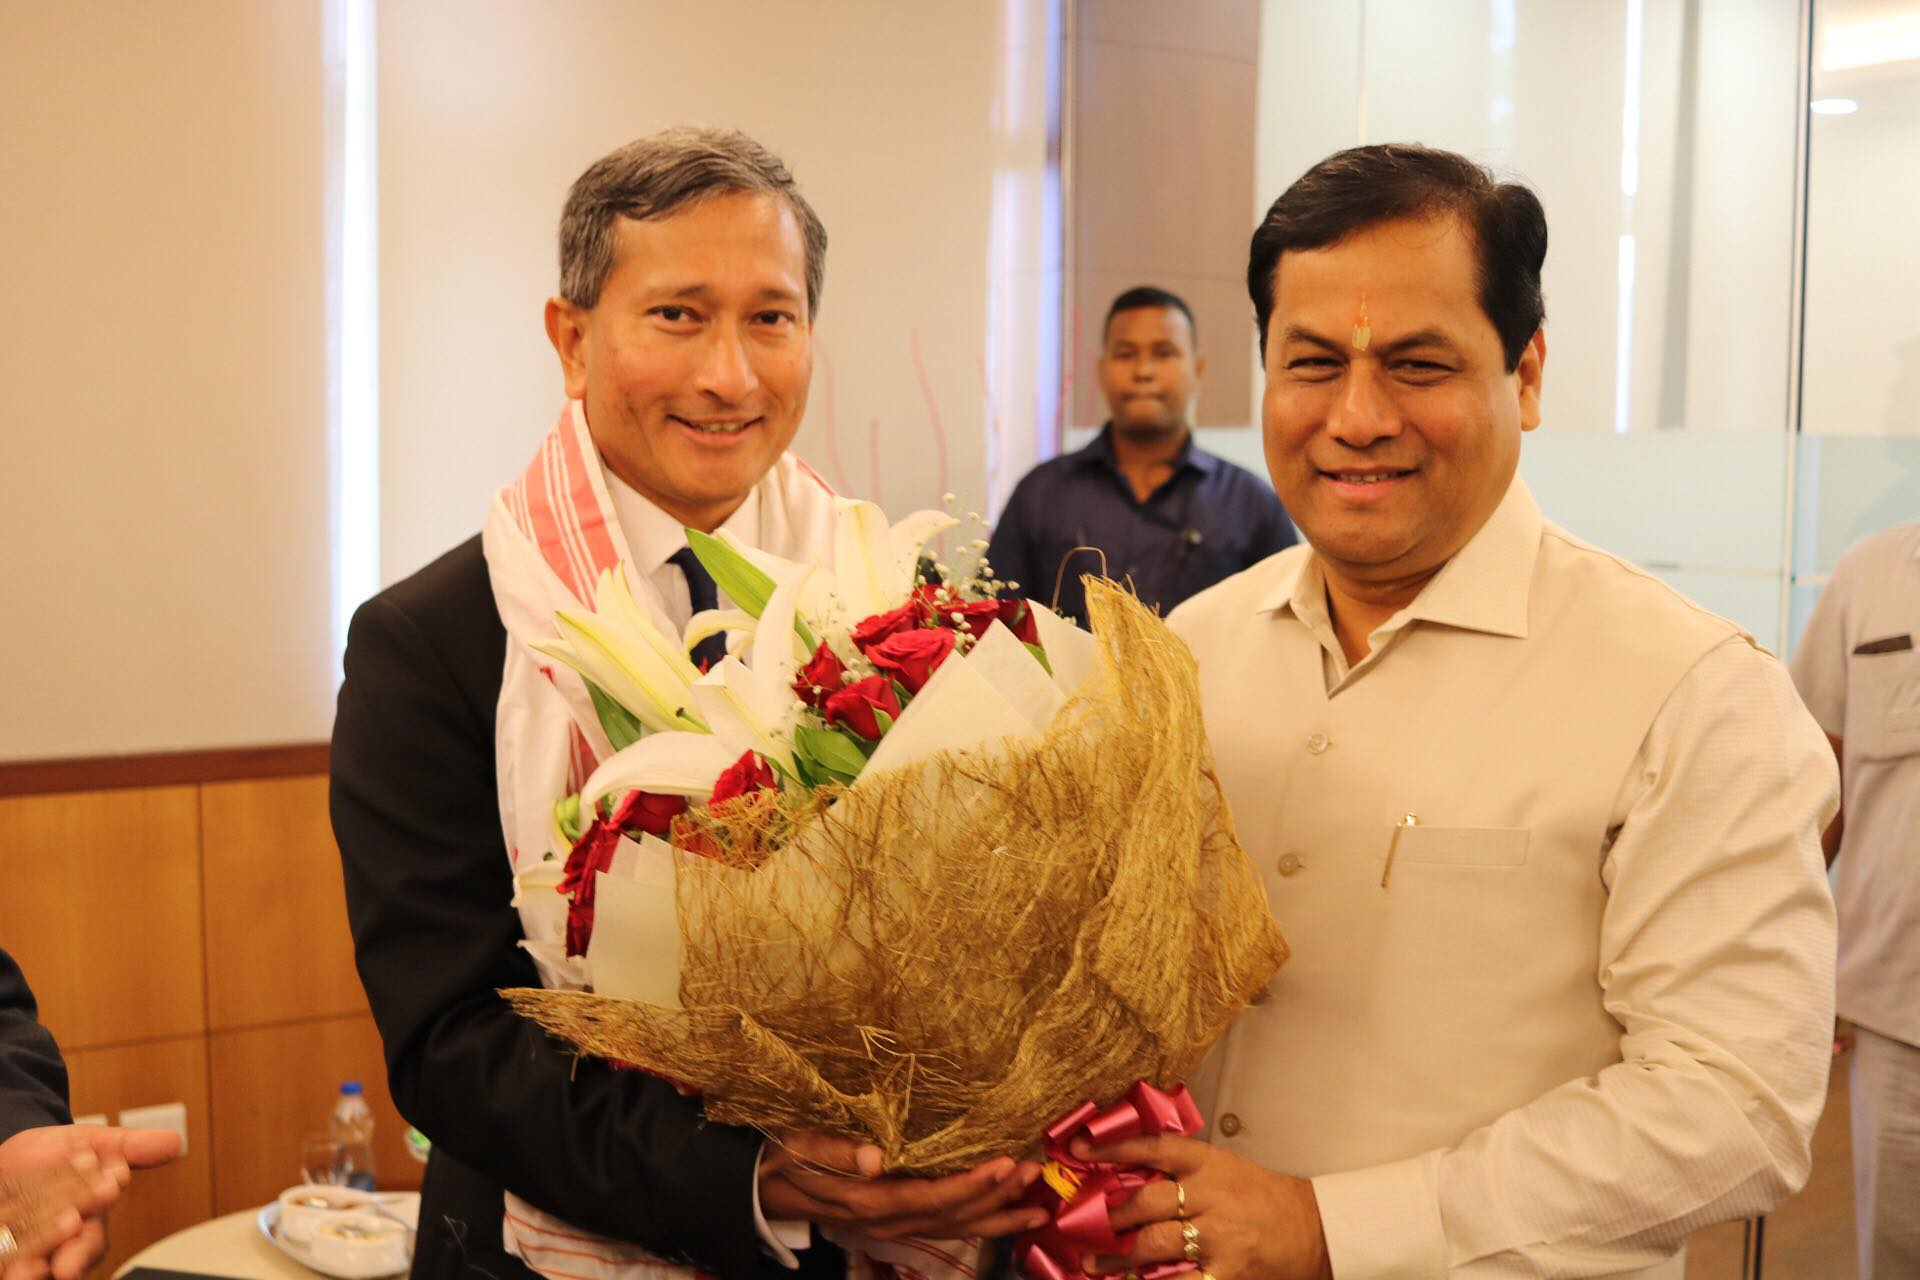 Singapore Minister for Foreign Affairs Dr Vivian Balakrishnan being welcomed by Sarbananda Sonowal, Chief Minister of Assam